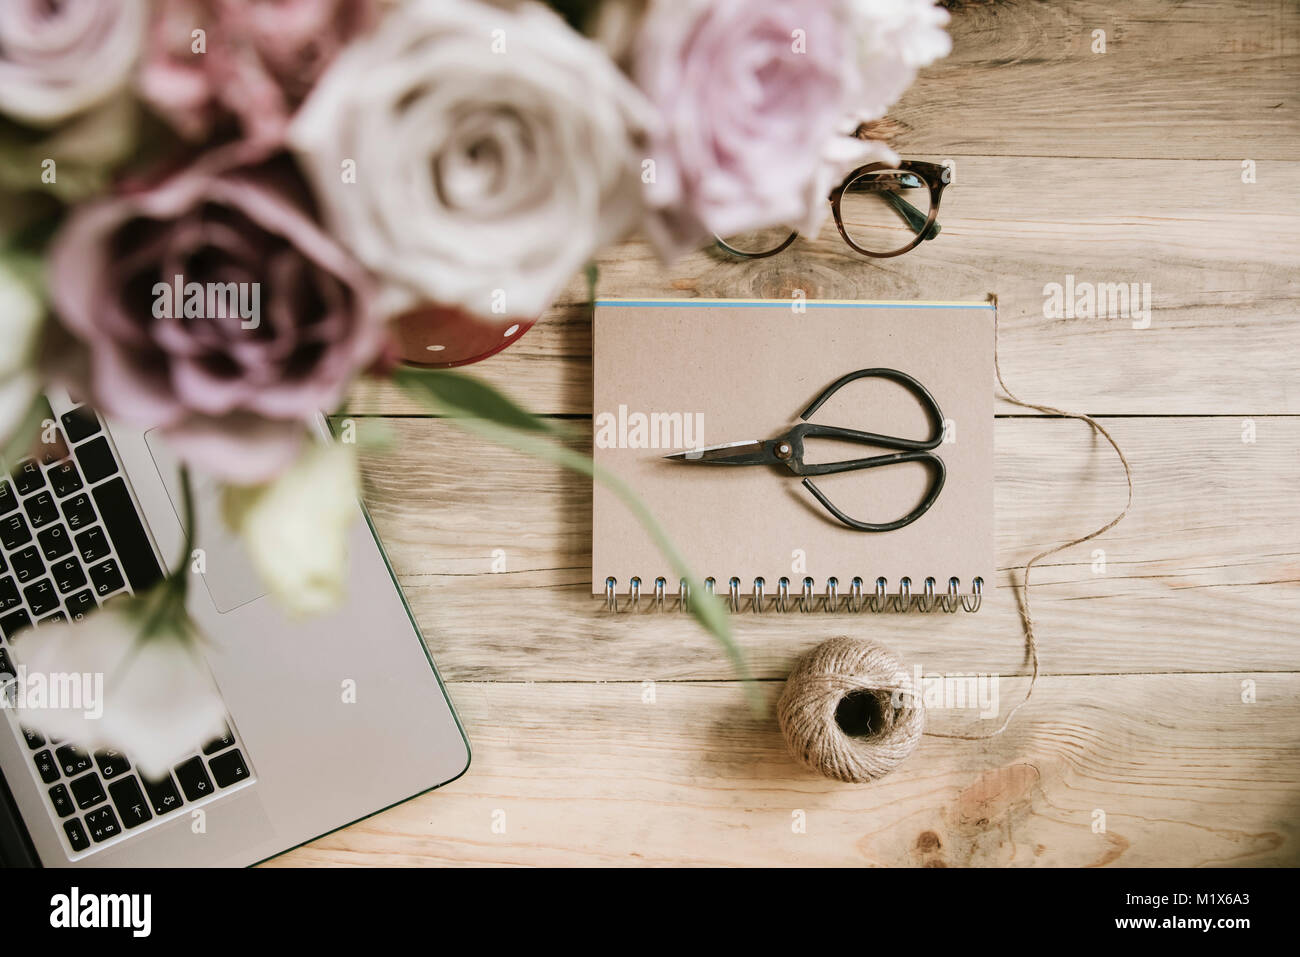 Crafting scissors, cardboard notebook, twine,laptop and flower bouquet on the old rustic table background - Stock Image